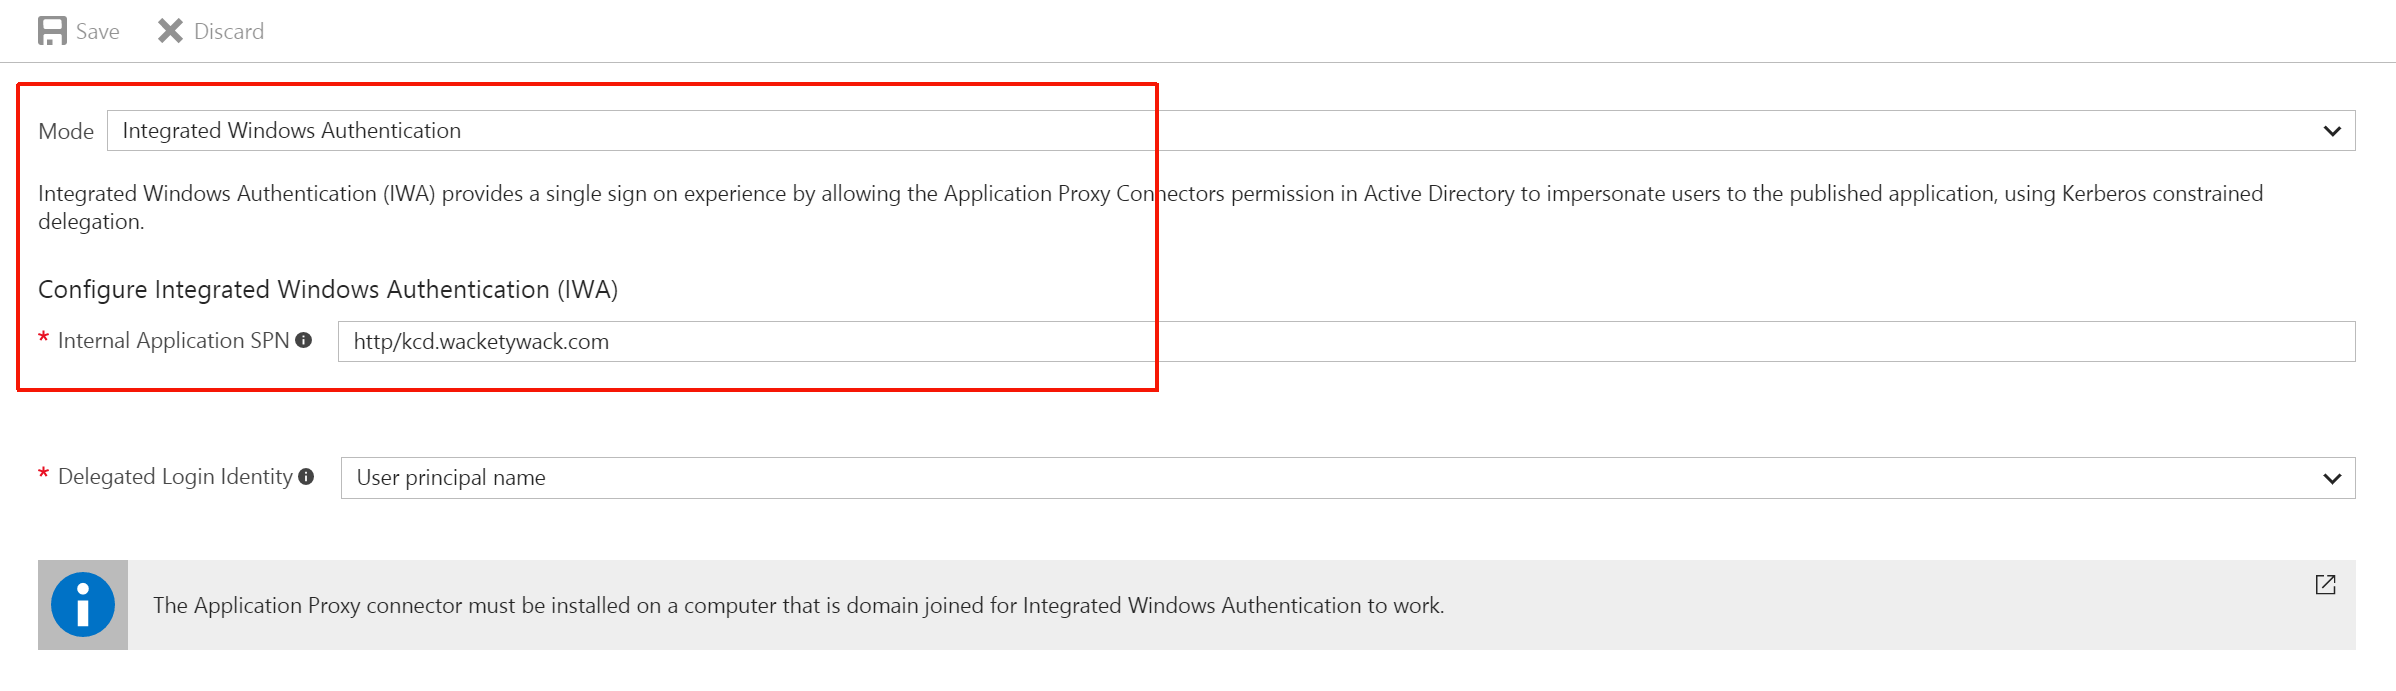 SPN configuration in the Azure portal